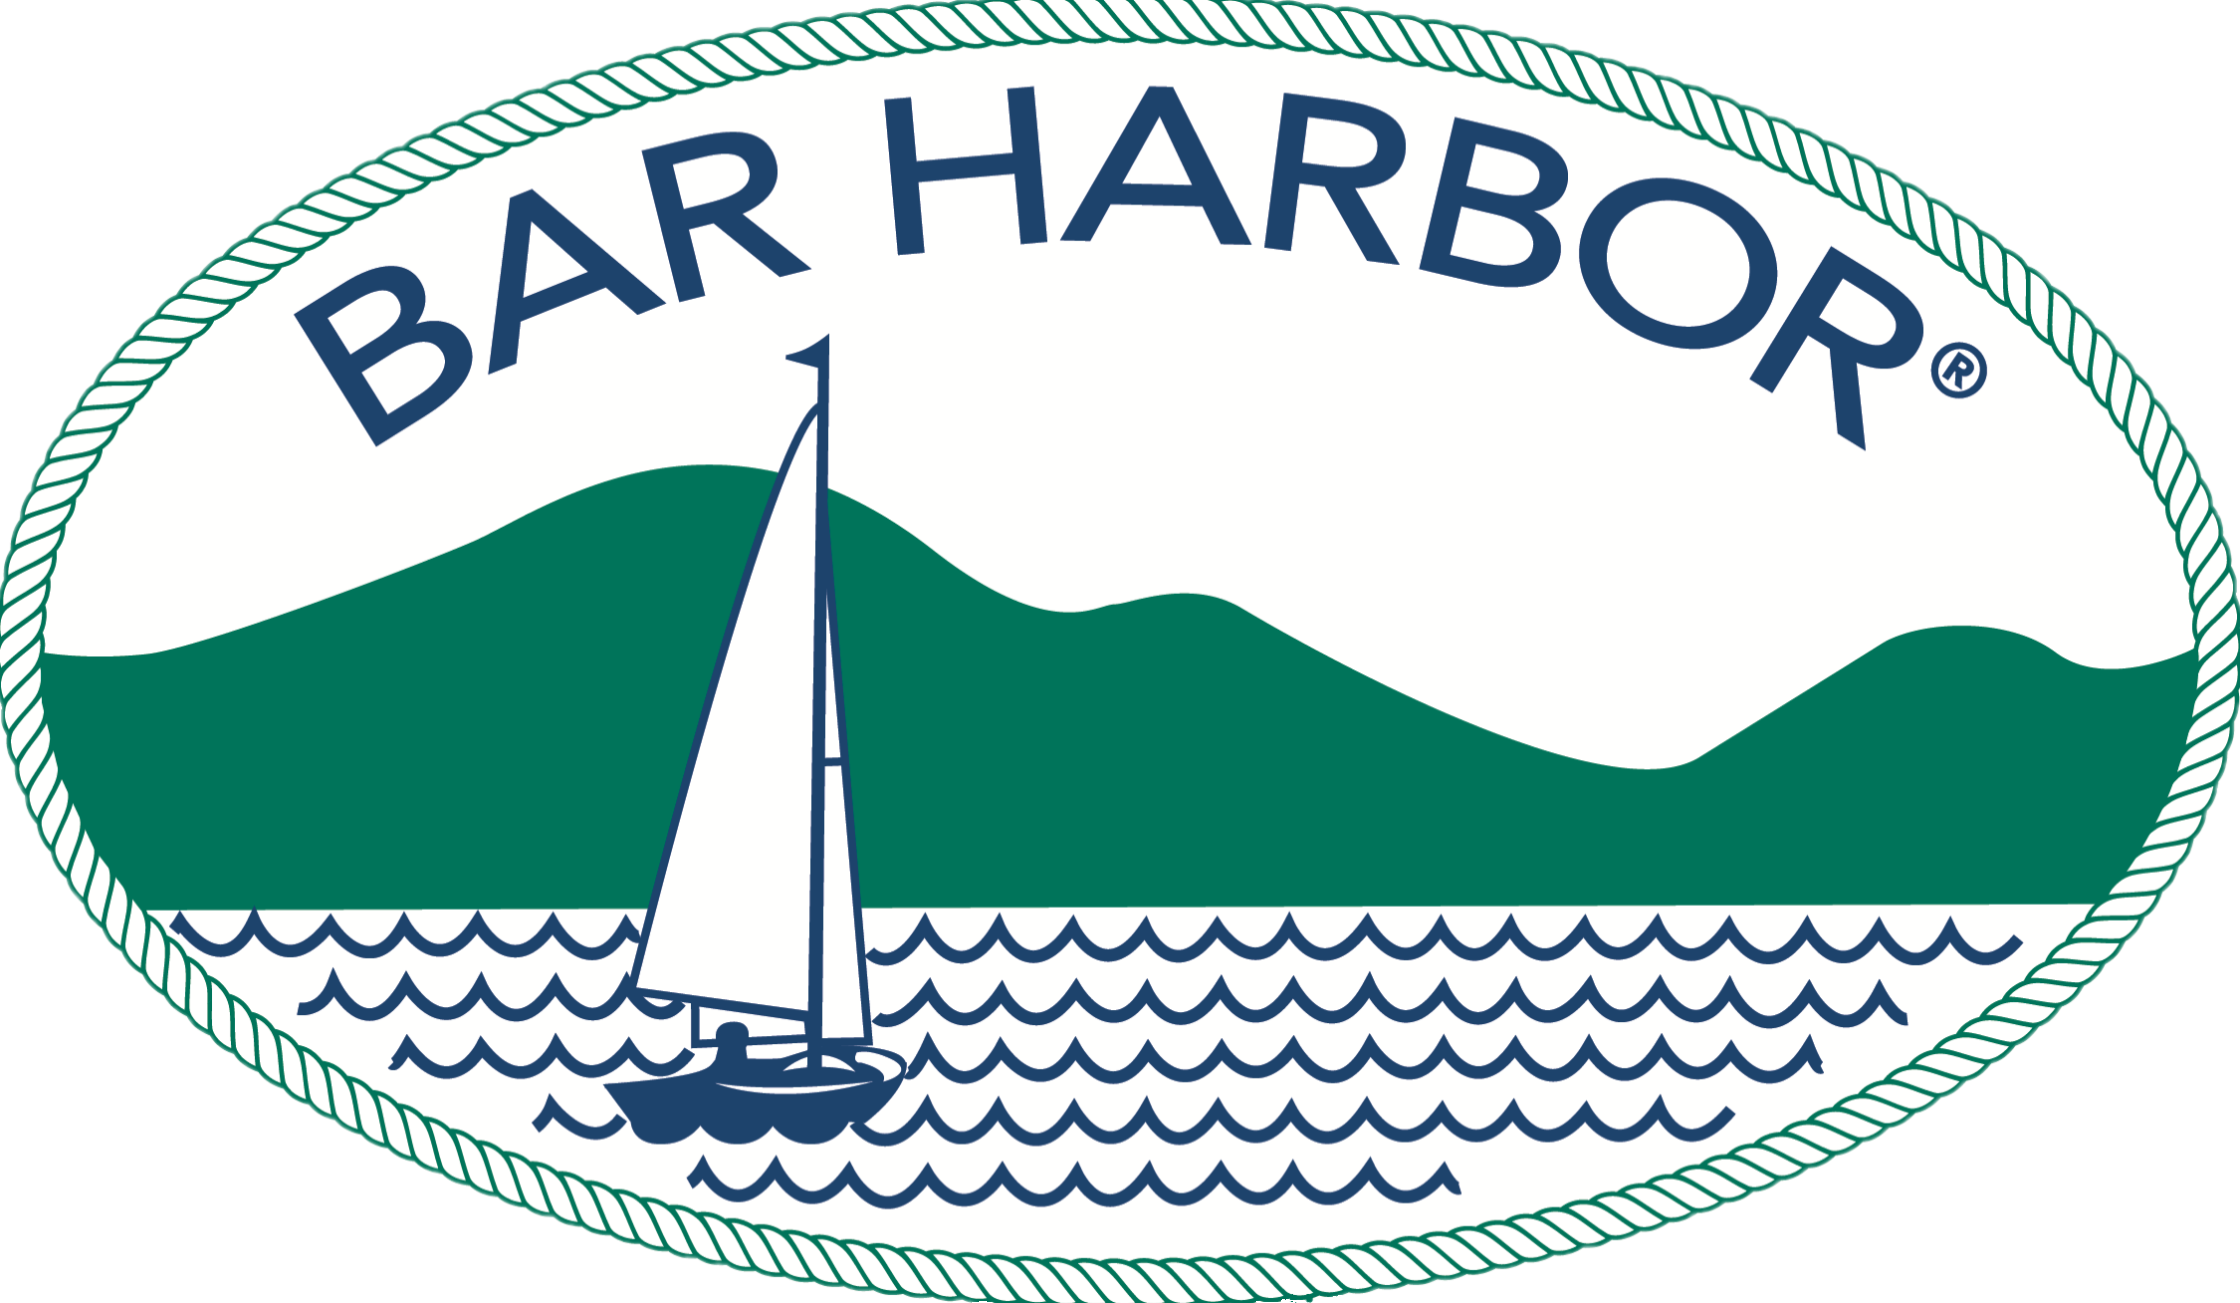 Shop Bar Harbor®